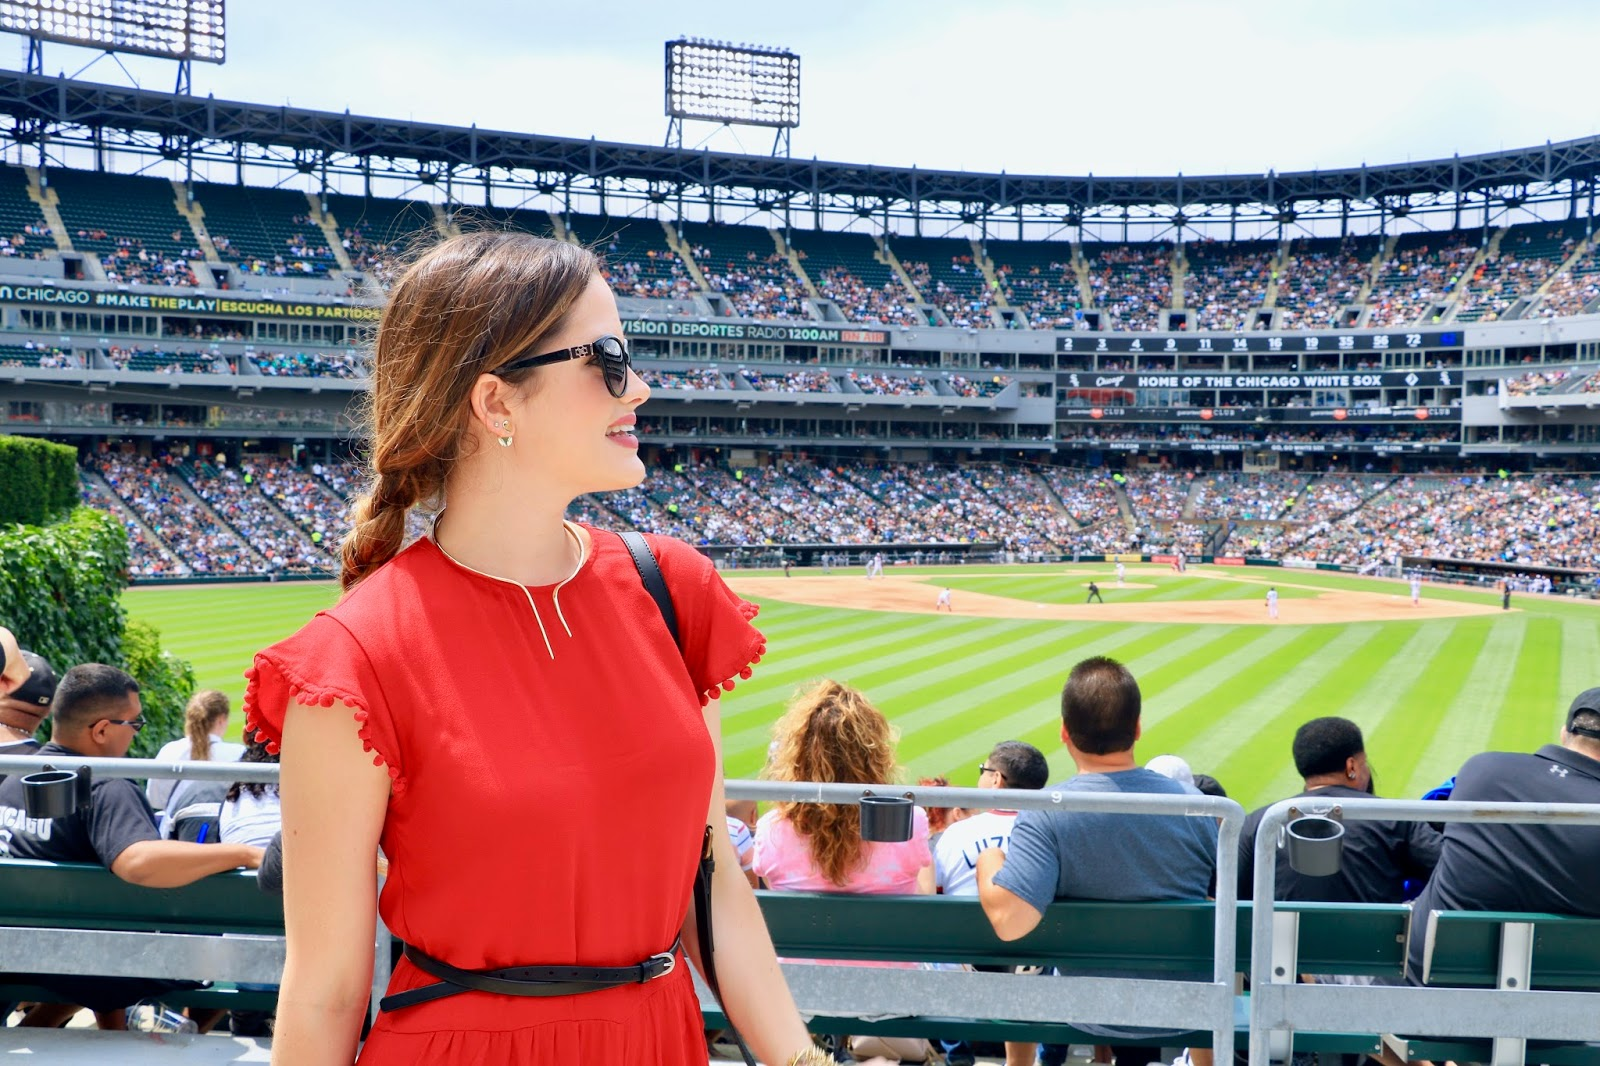 Fashion blogger Kathleen Harper wearing baseball game fashion